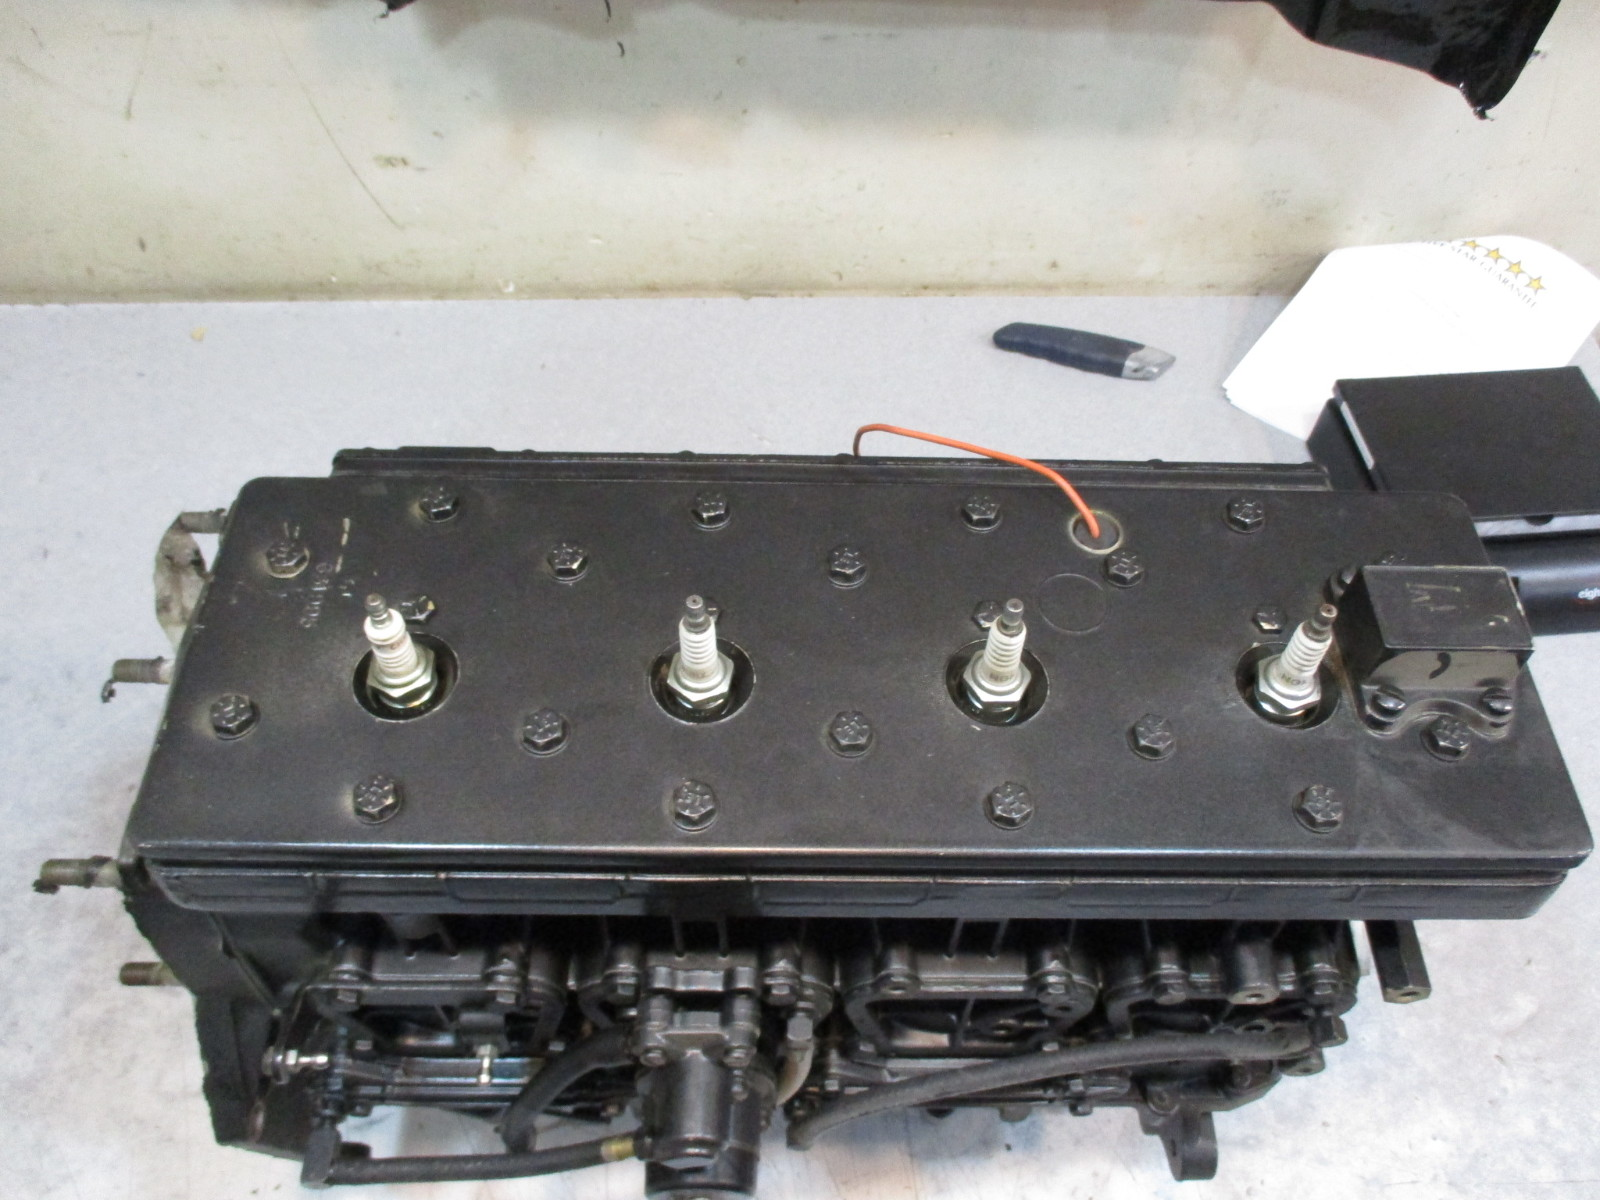 Force 125 outboard engine diagram hiniker v plow wiring for 125 hp force outboard motor for sale